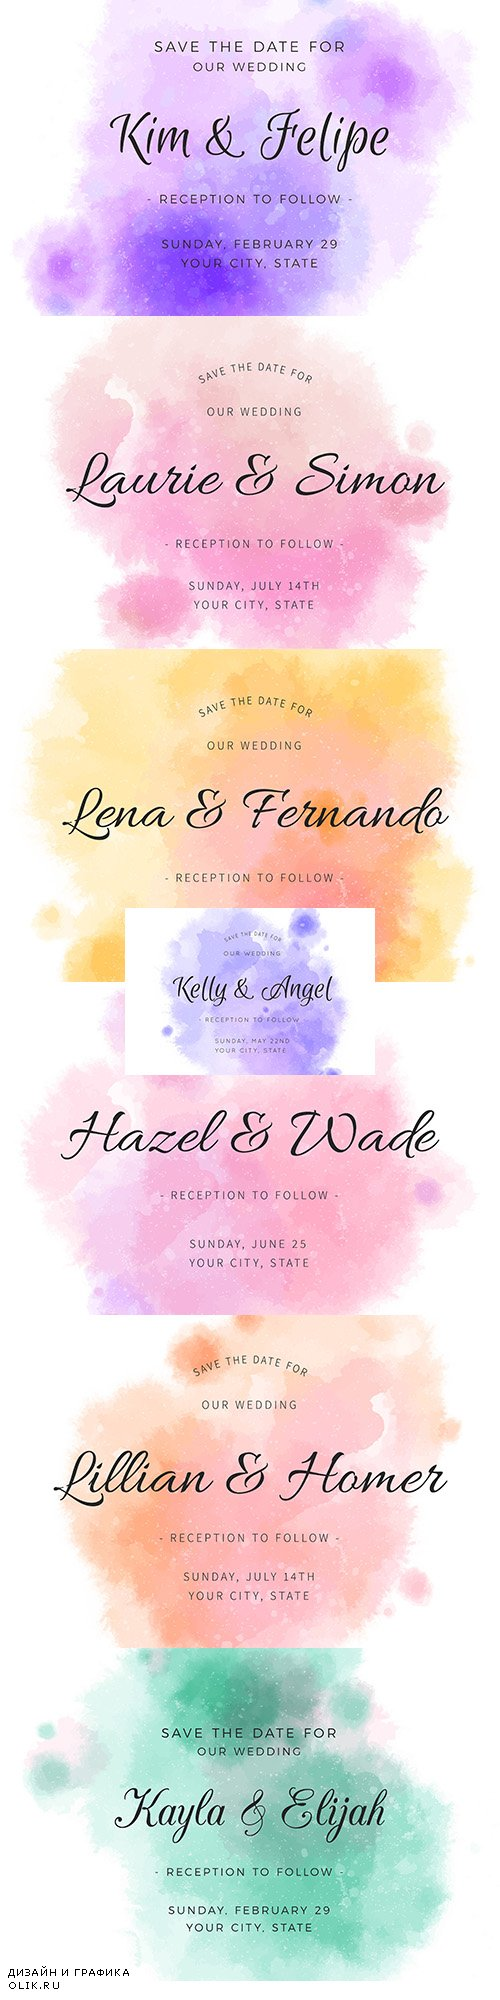 Wedding invitations with gradient watercolour spots